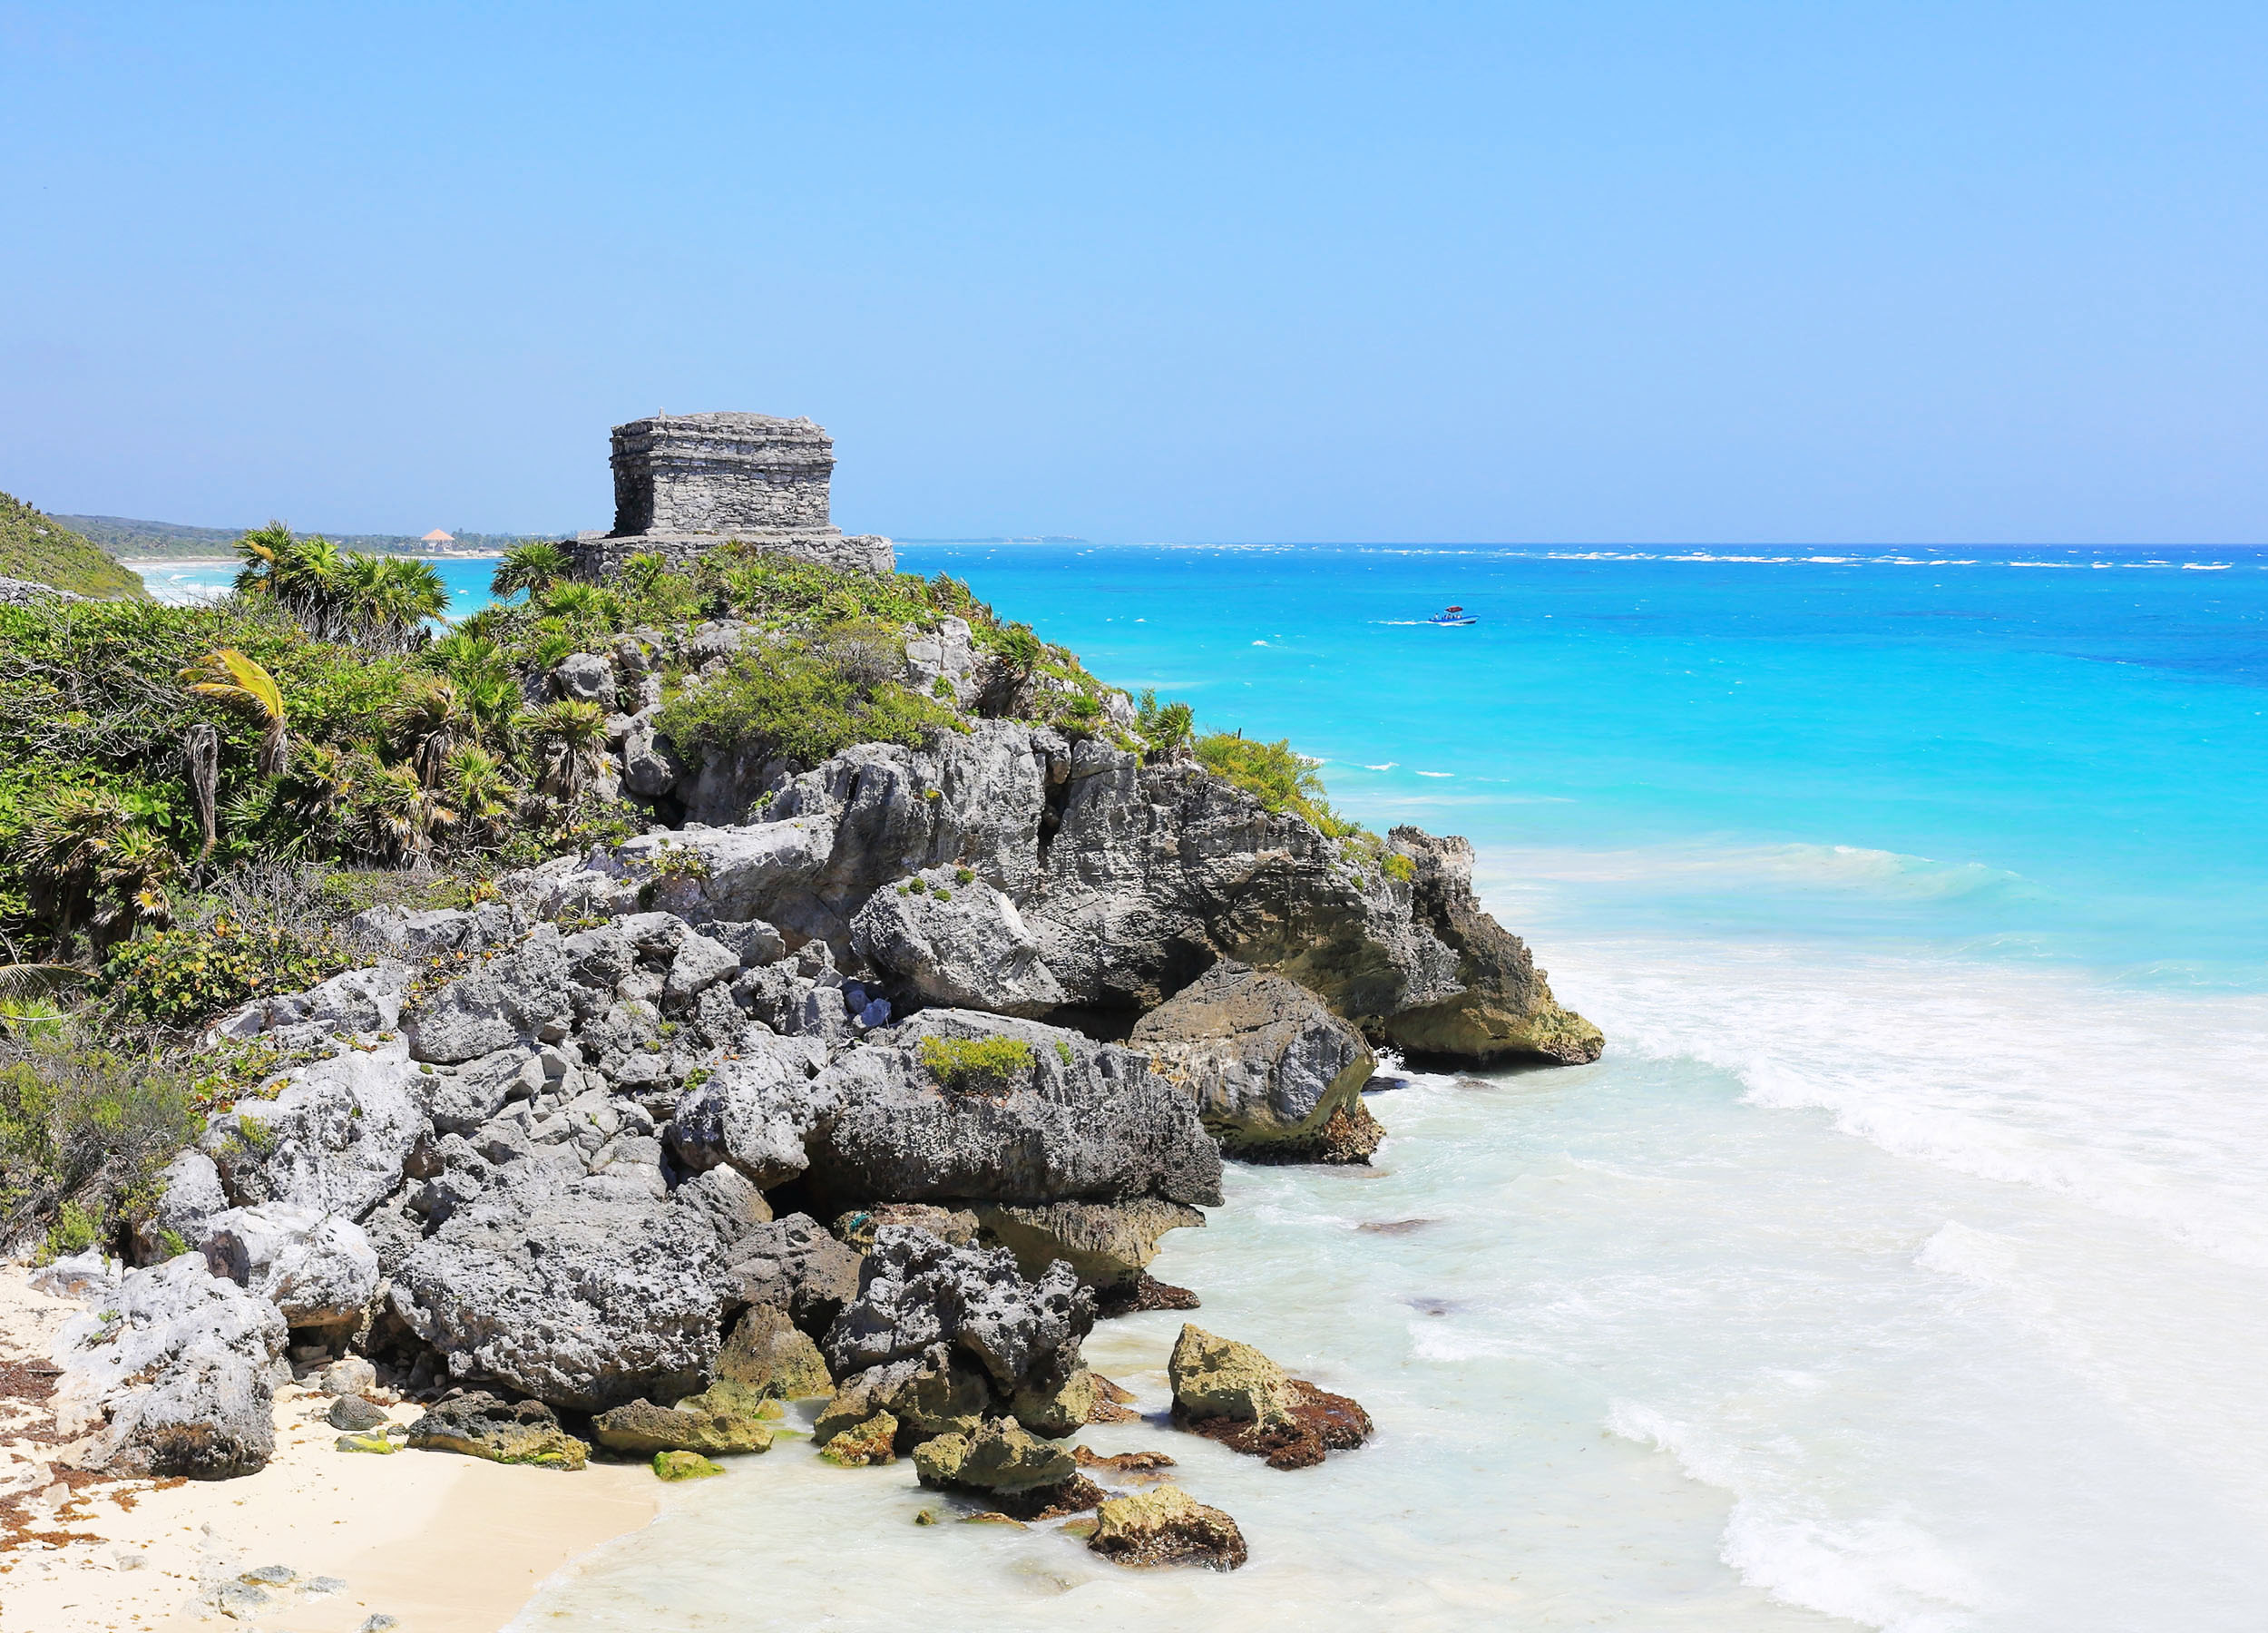 A stone rectangular building on arocky outcrop, God of the Winds temple in Tulum, Mexico